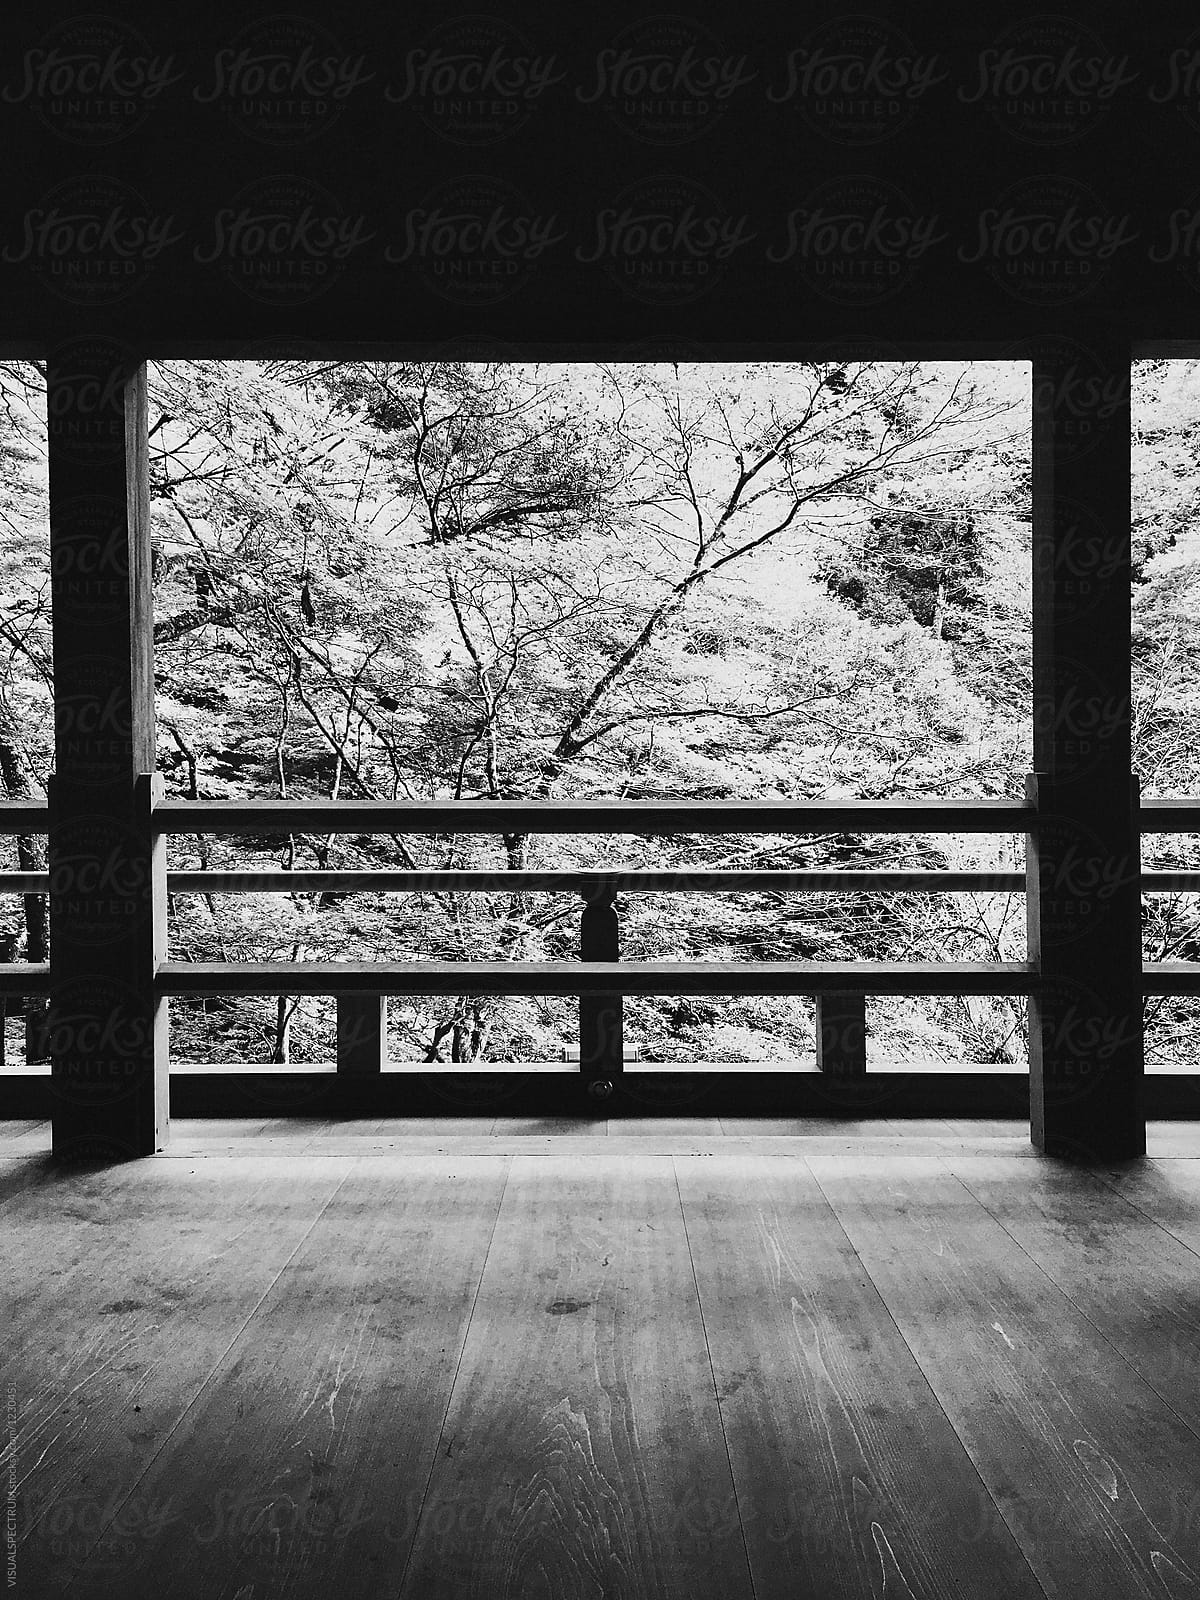 Stock photo minimalist japanese design and view on trees in black and white